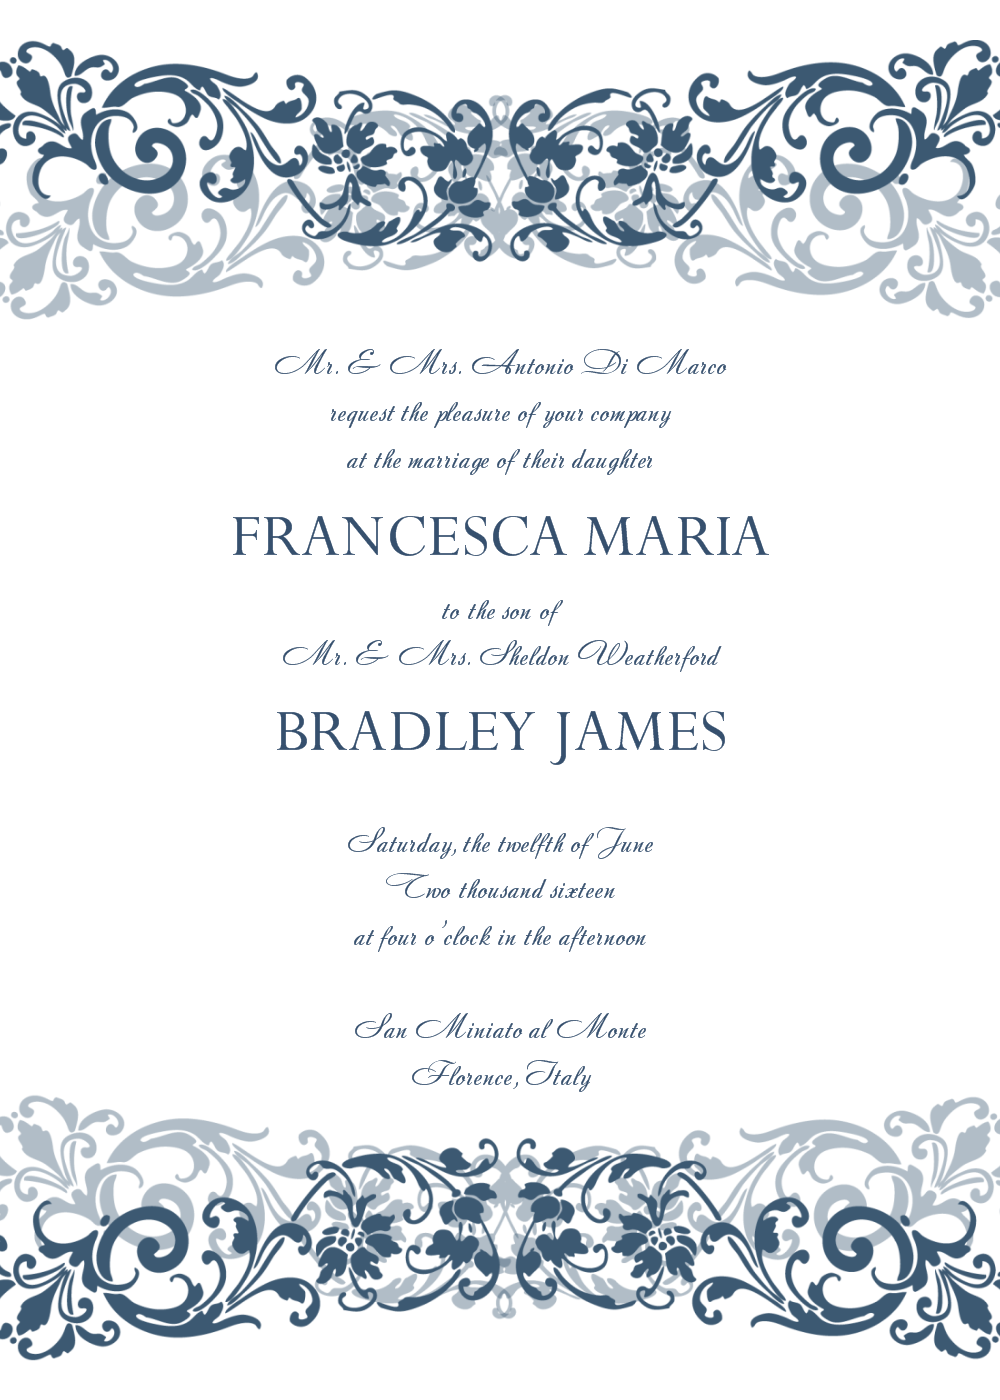 Free Wedding Invitations Templates St Bridal World - Cheap wedding invitation templates